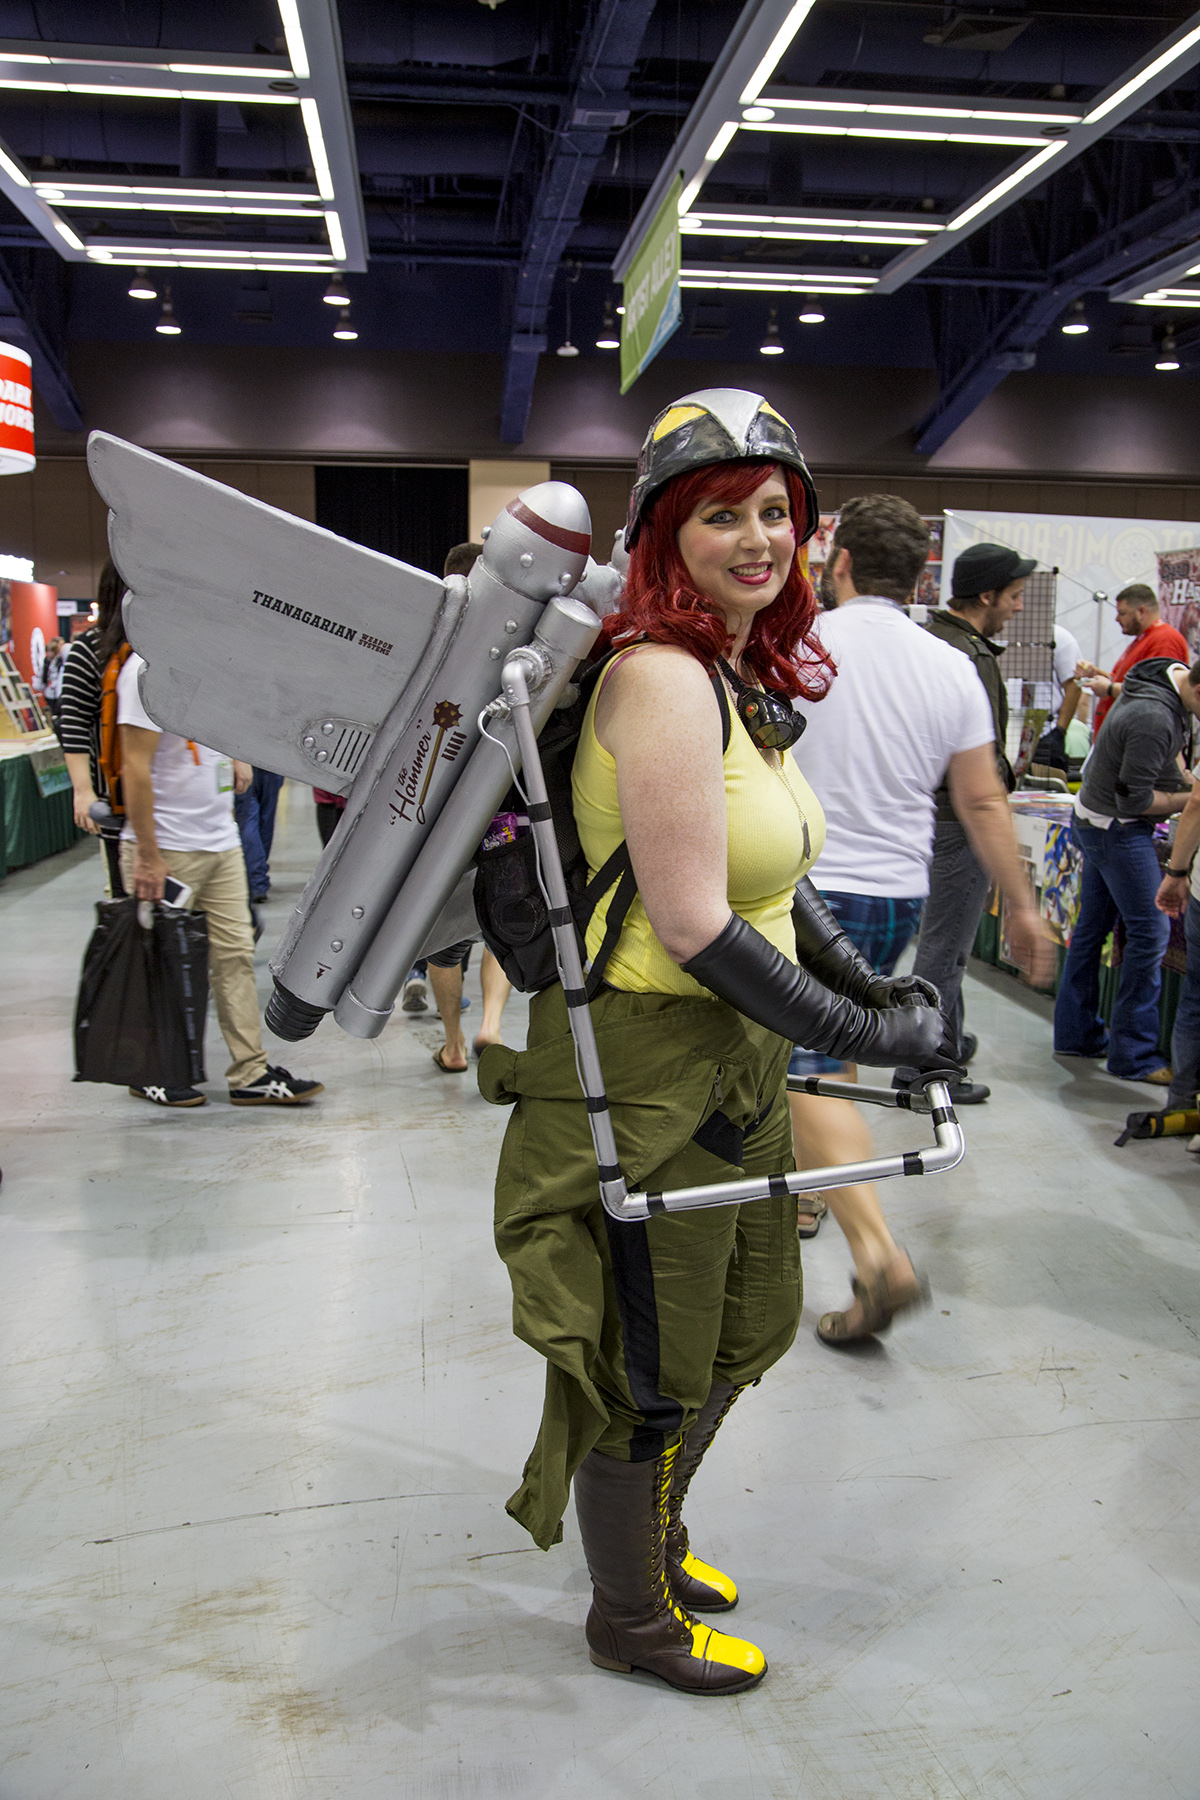 Emerald City Comicon Cosplay Gallery FULL - The GCE